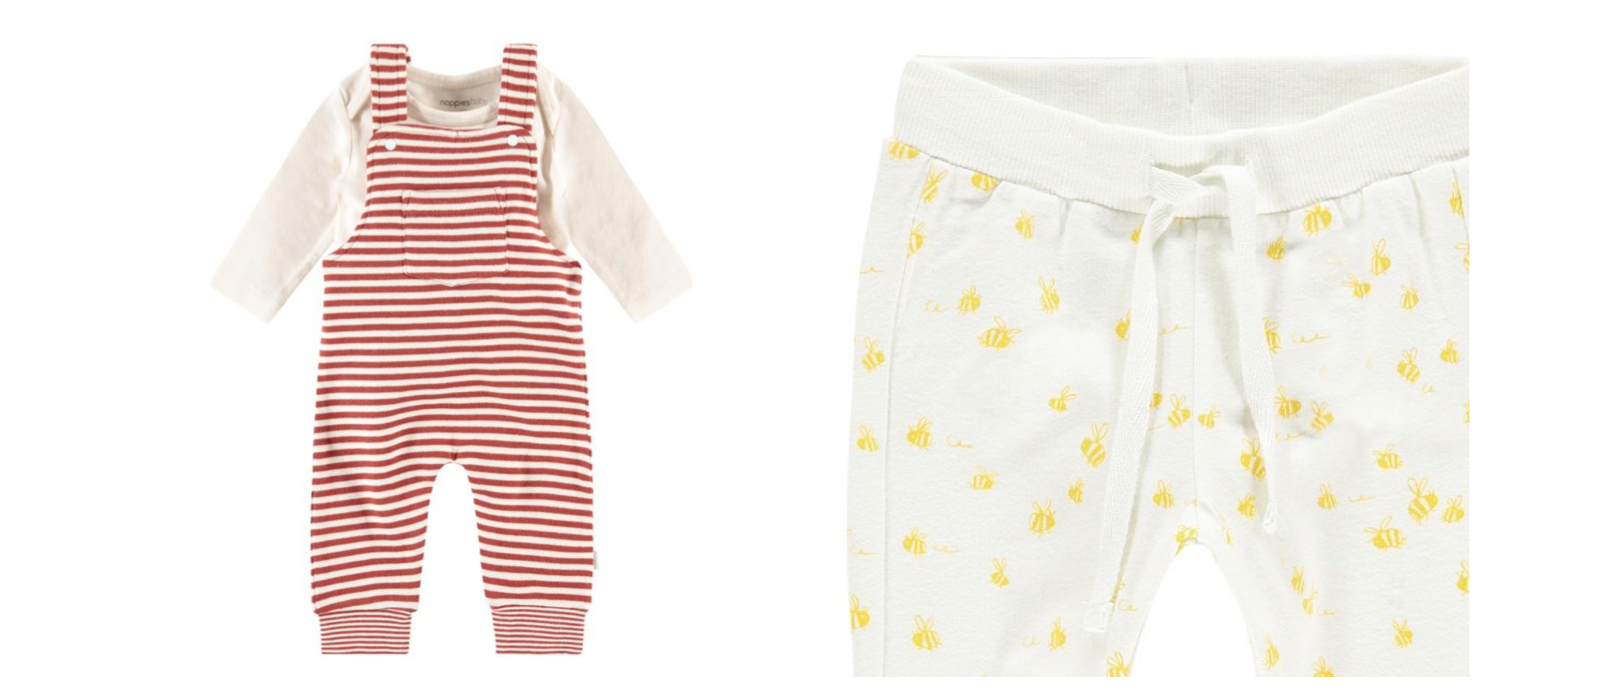 Shop the For Baby Collection | Mother's Day 2020 | Carry Maternity | Toronto Canada